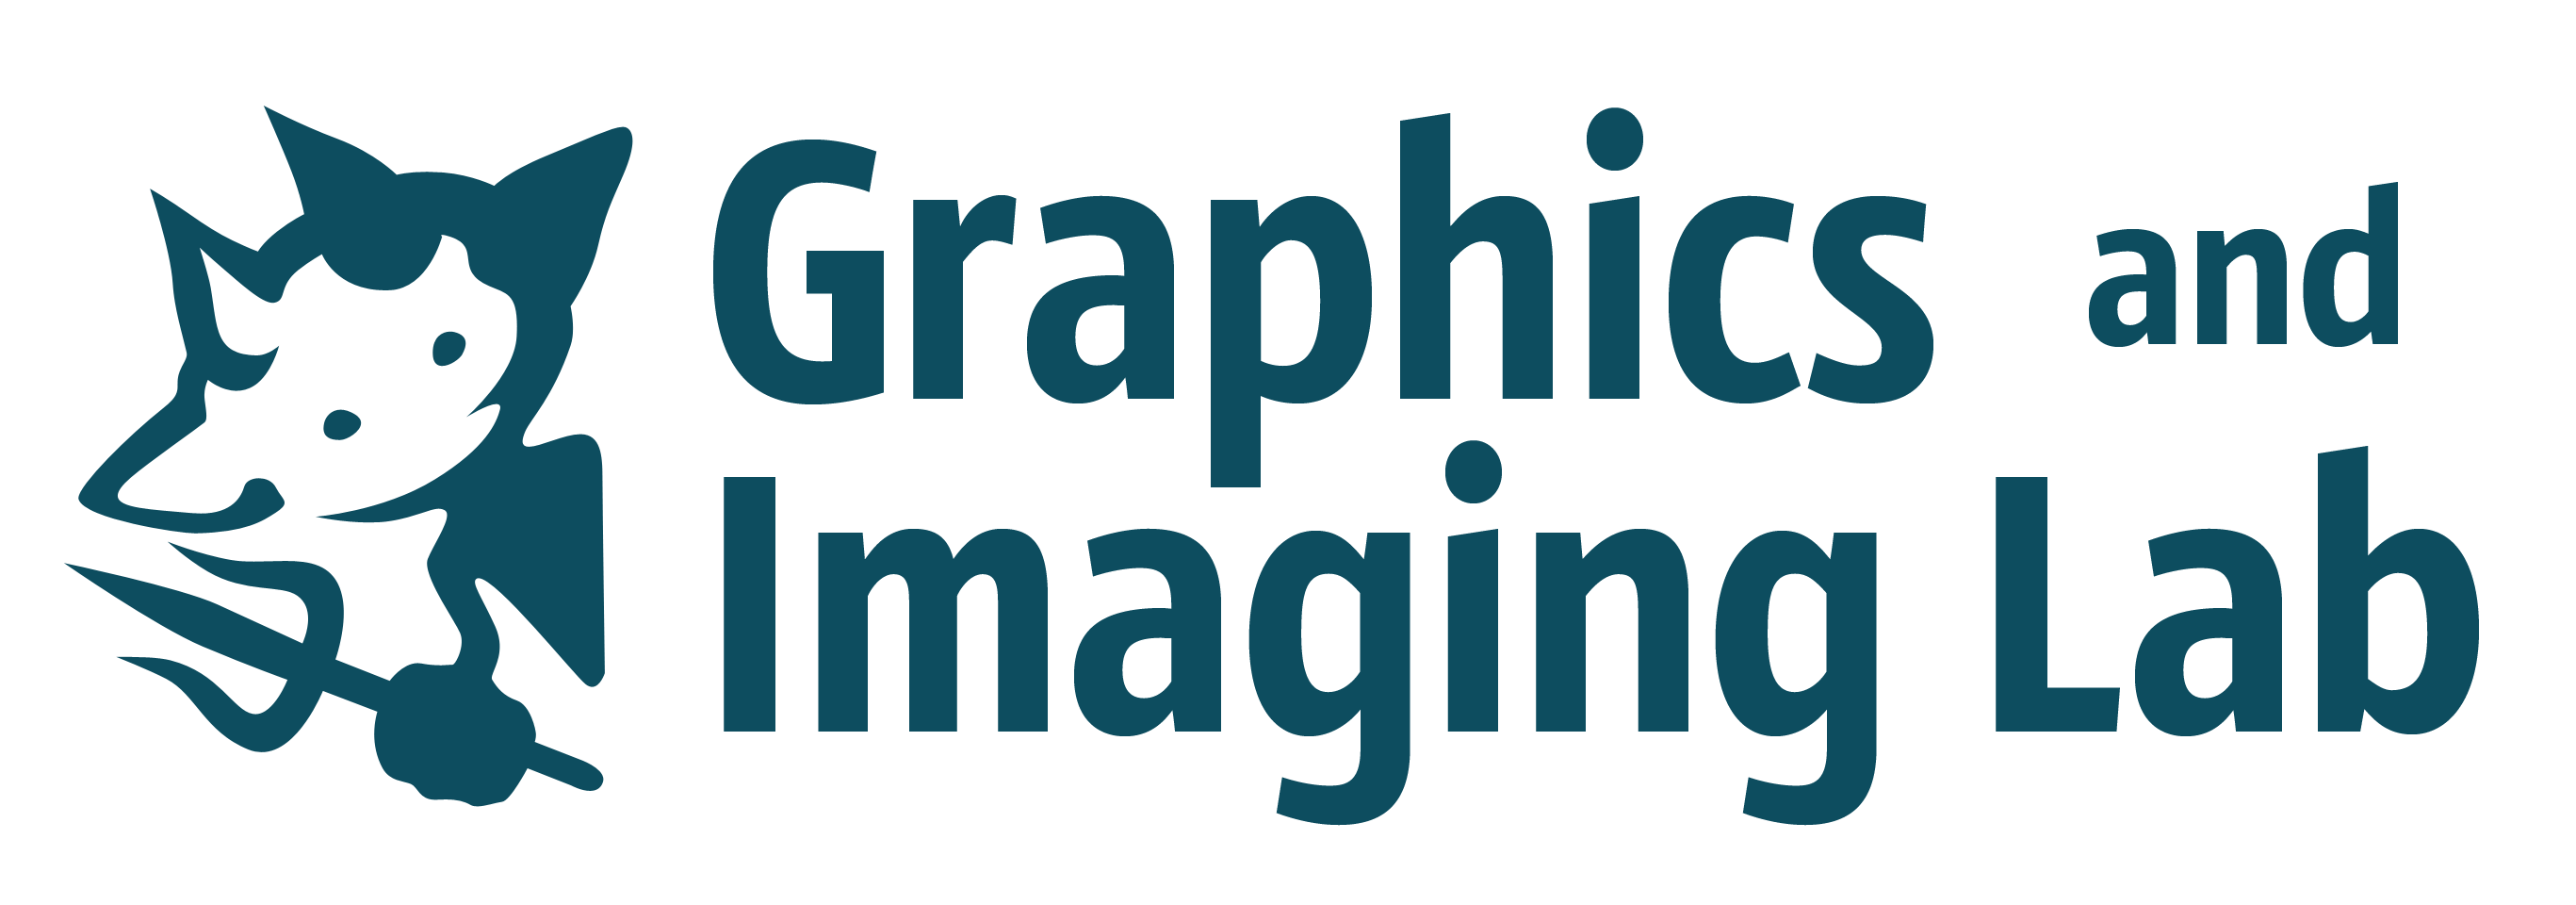 Graphics and imaging lab